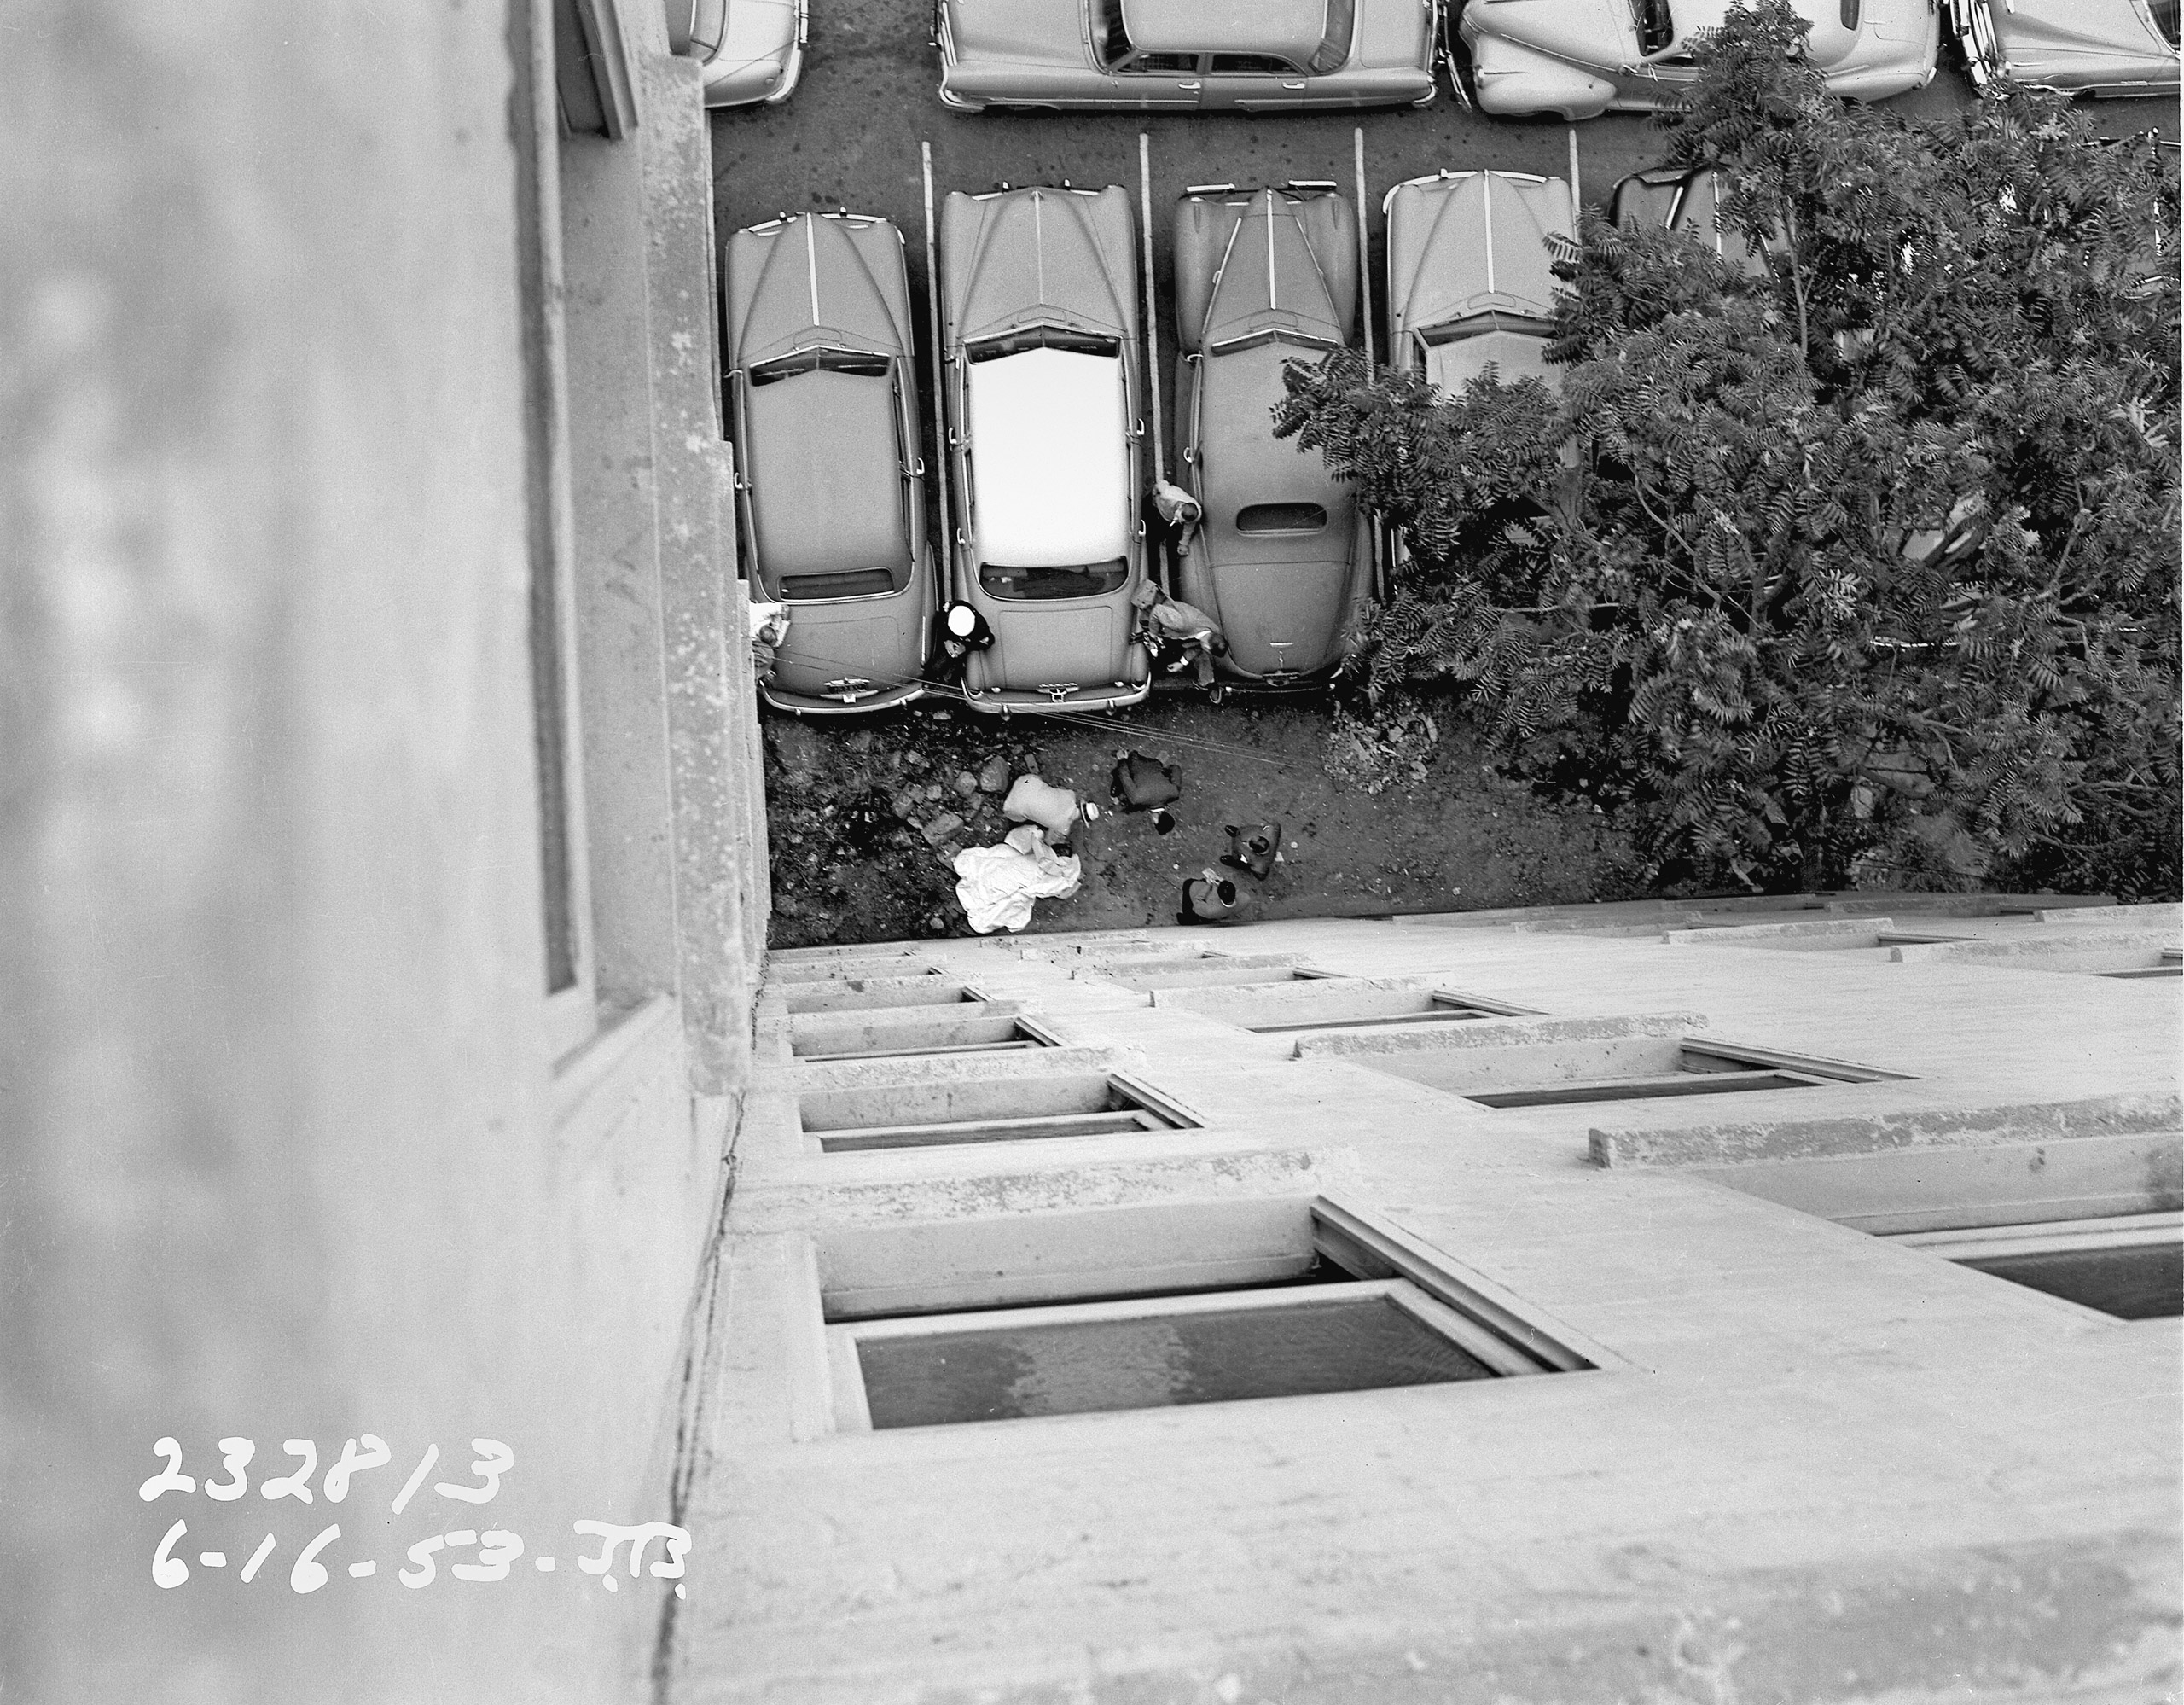 Man jumps to his death from the Northern Hotel in the Bunker Hill area of Los Angeles on June 16, 1953.